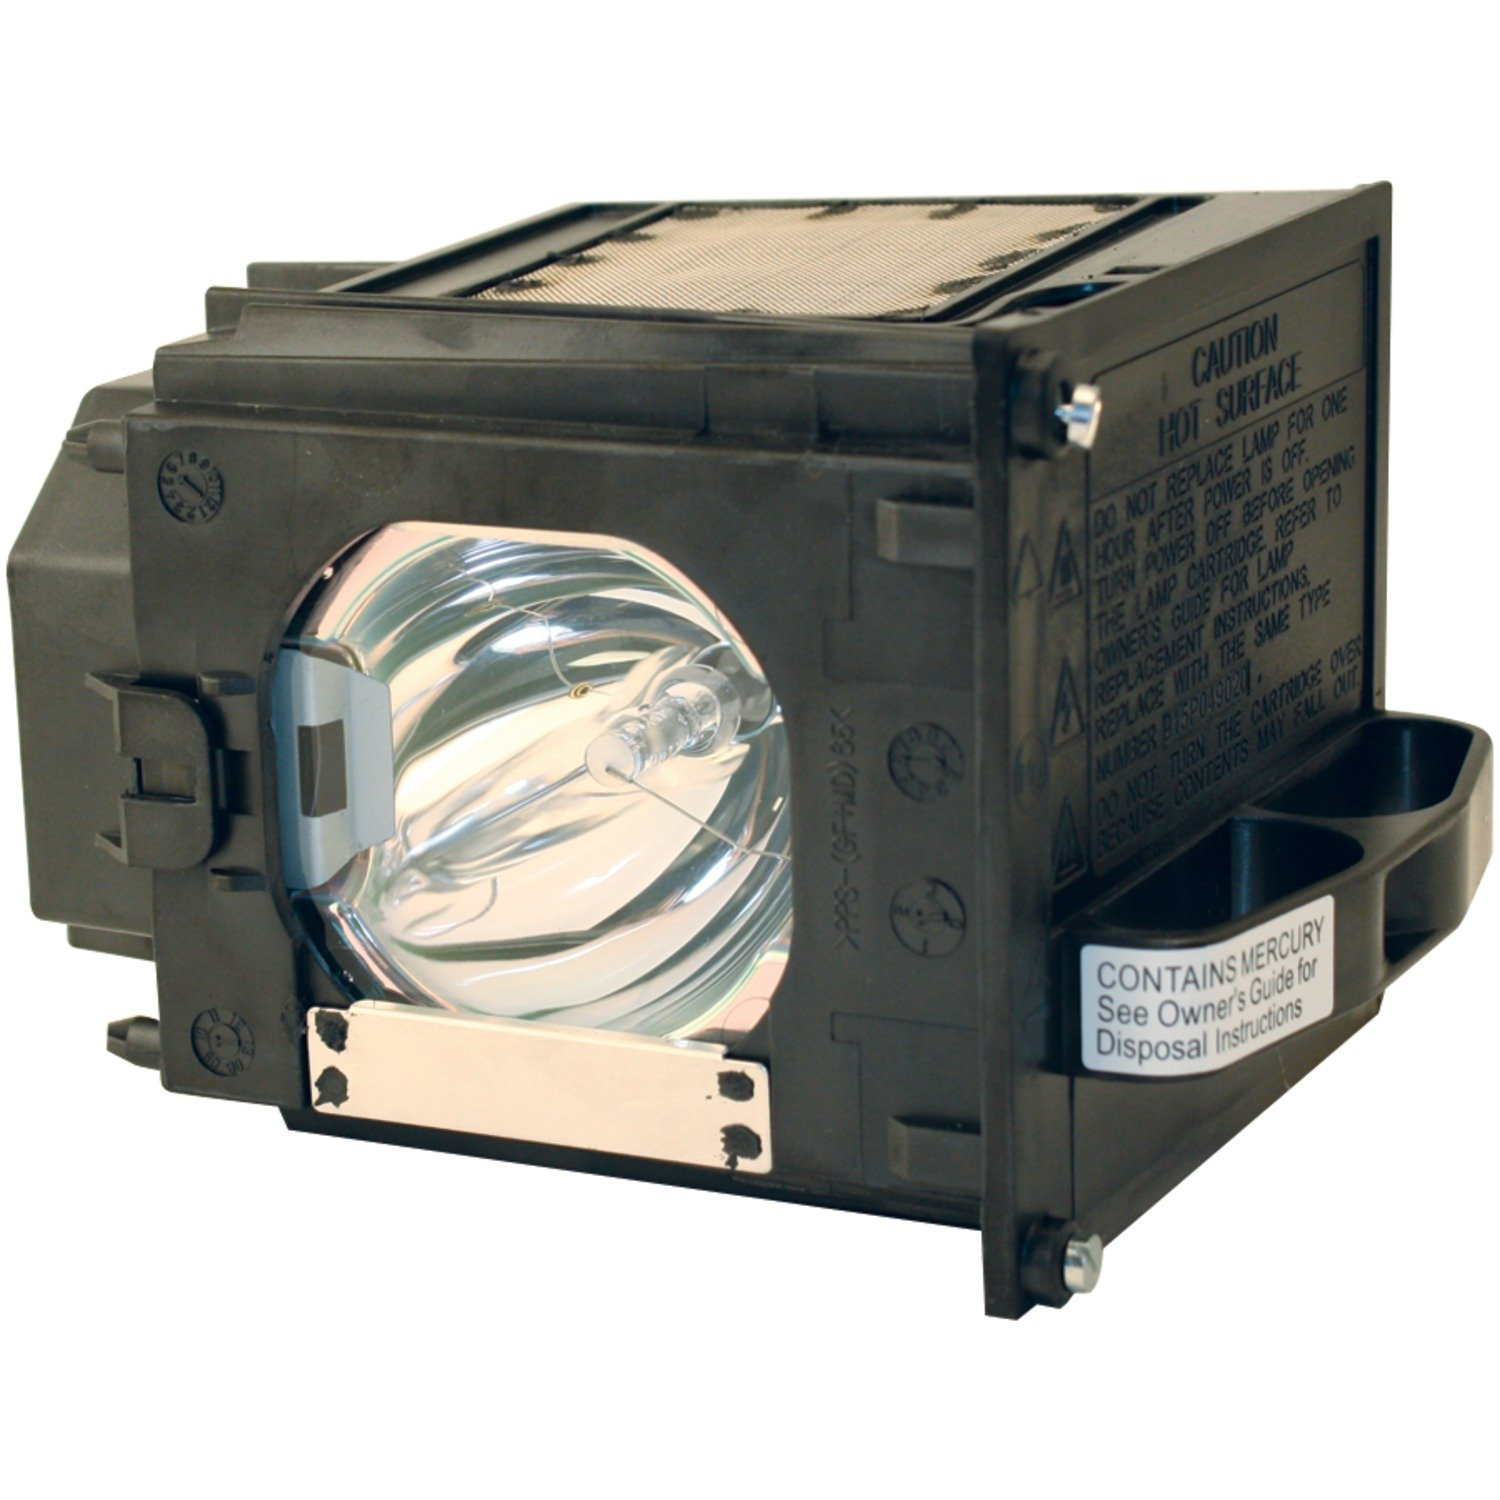 TV Lamp 915P049020 For Mitsubishi WD-57831 WD57831 WD-65831 WD-73831 WD-73732 Projector Bulb Lamp with Housing<br>